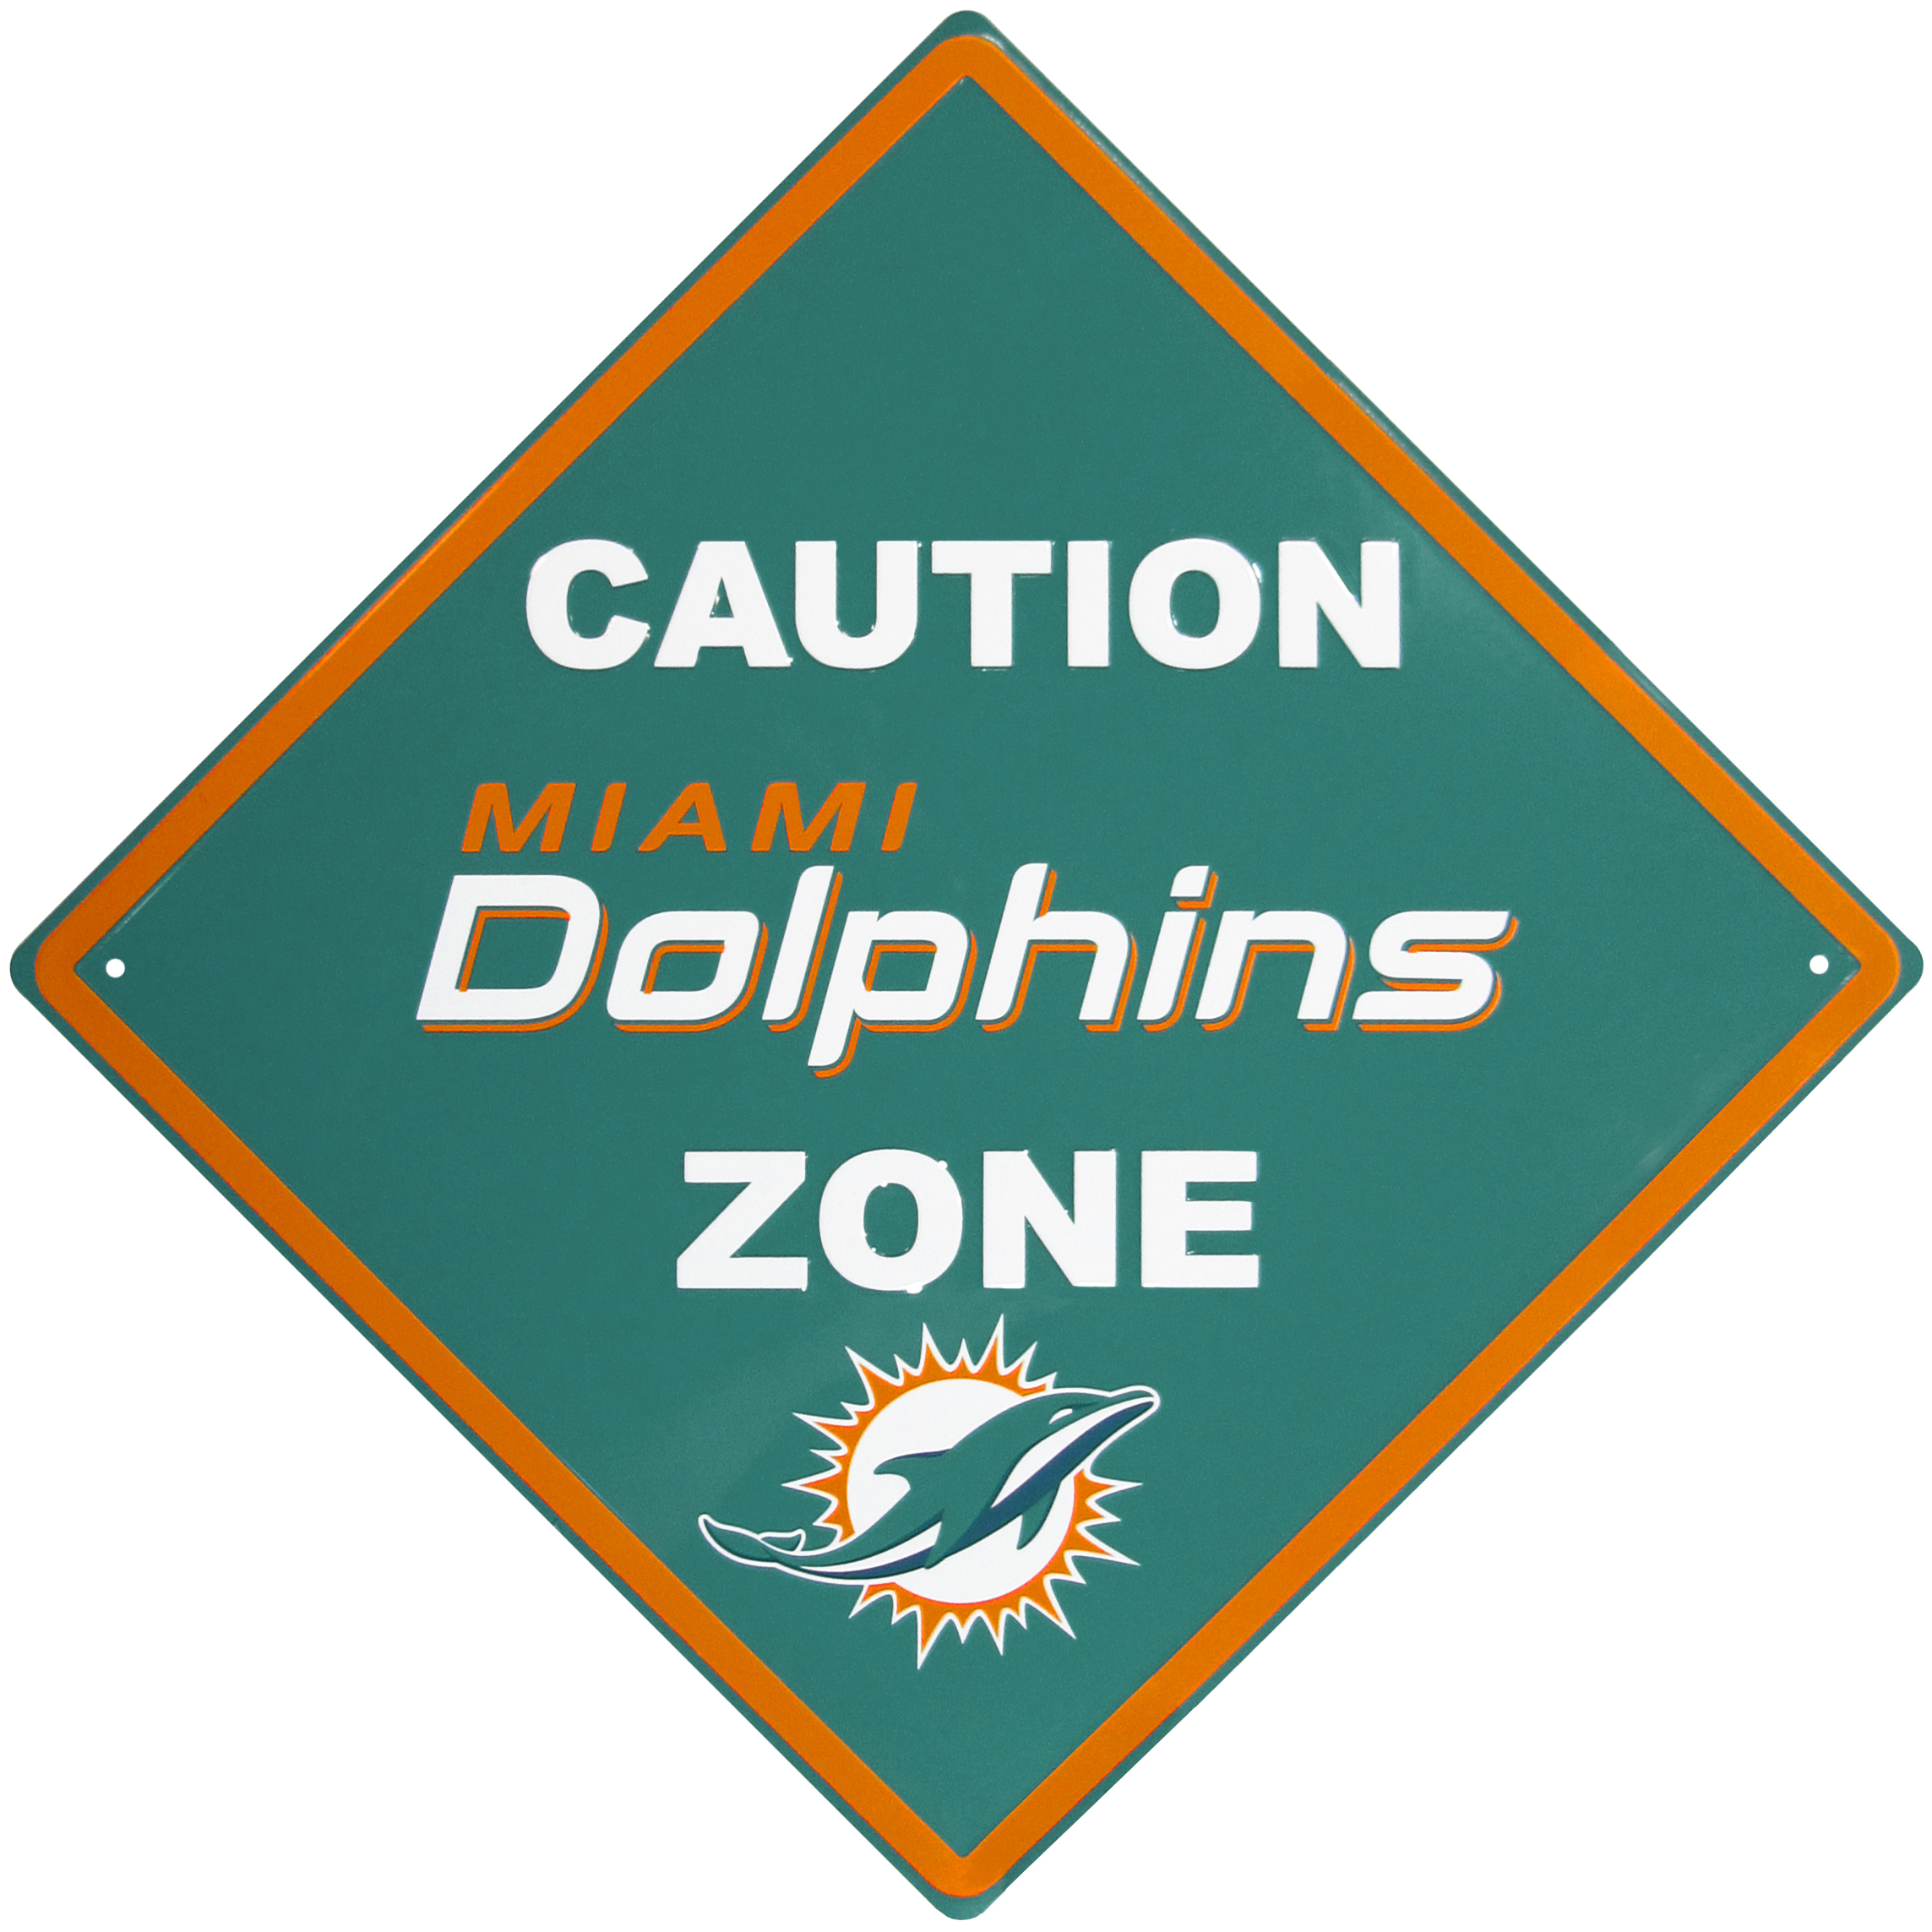 Miami Dolphins Caution Wall Sign Plaque - Let everyone know that they are entering Miami Dolphins territory! Our 14 inch caution wall plaques are a the perfect way to convert any room into a fan cave! The light-weight aluminum signs mount easily to any wall and are perfect for the home or office.